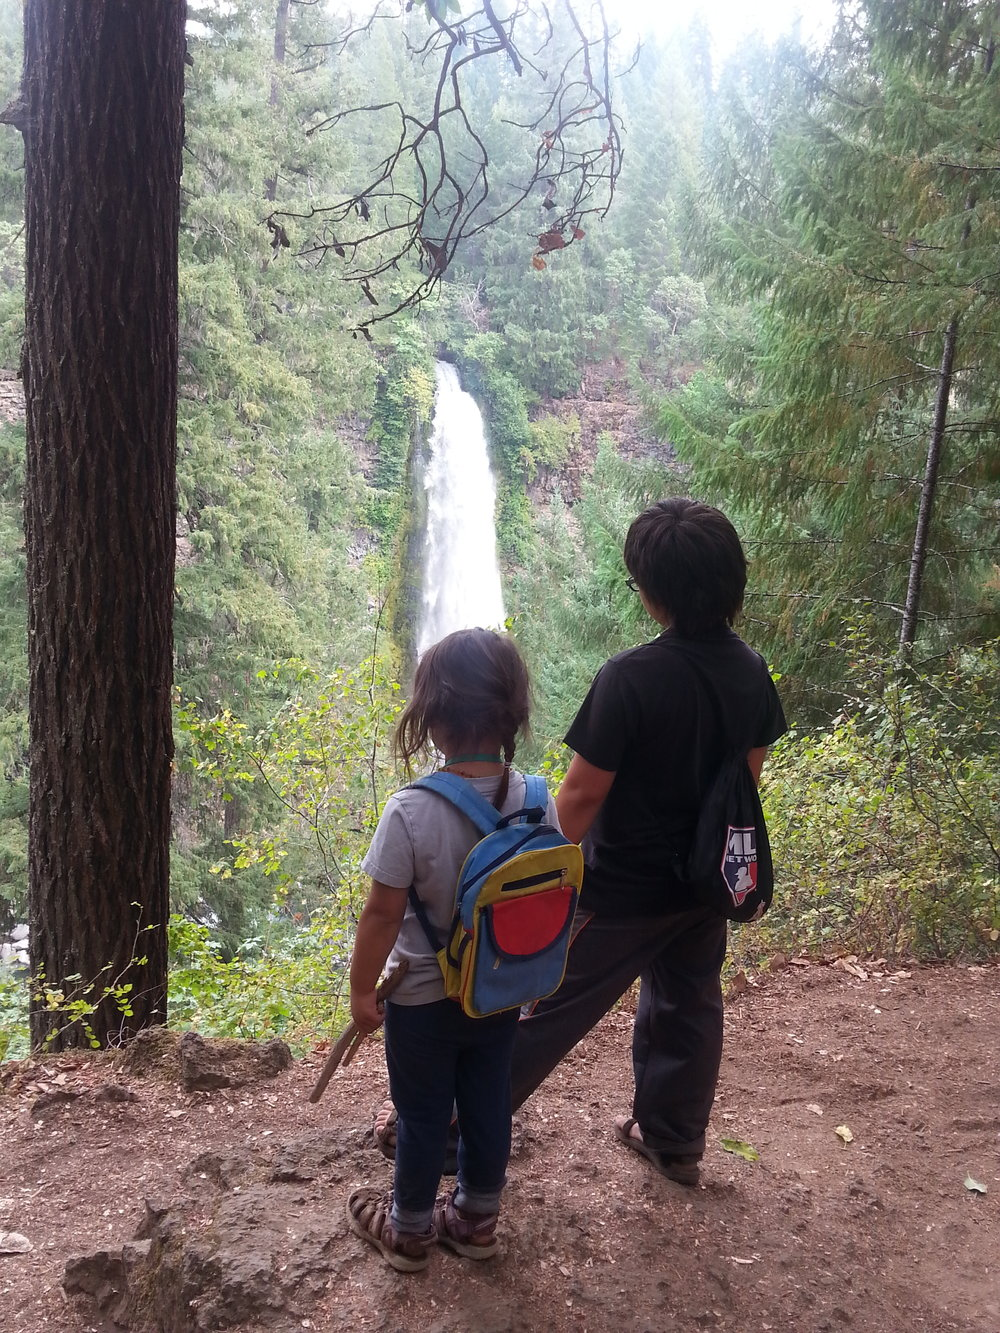 MILL CREEK FALLS  - Waterfalls - What to do in Southern Oregon - Things to do - Hikes - Kids